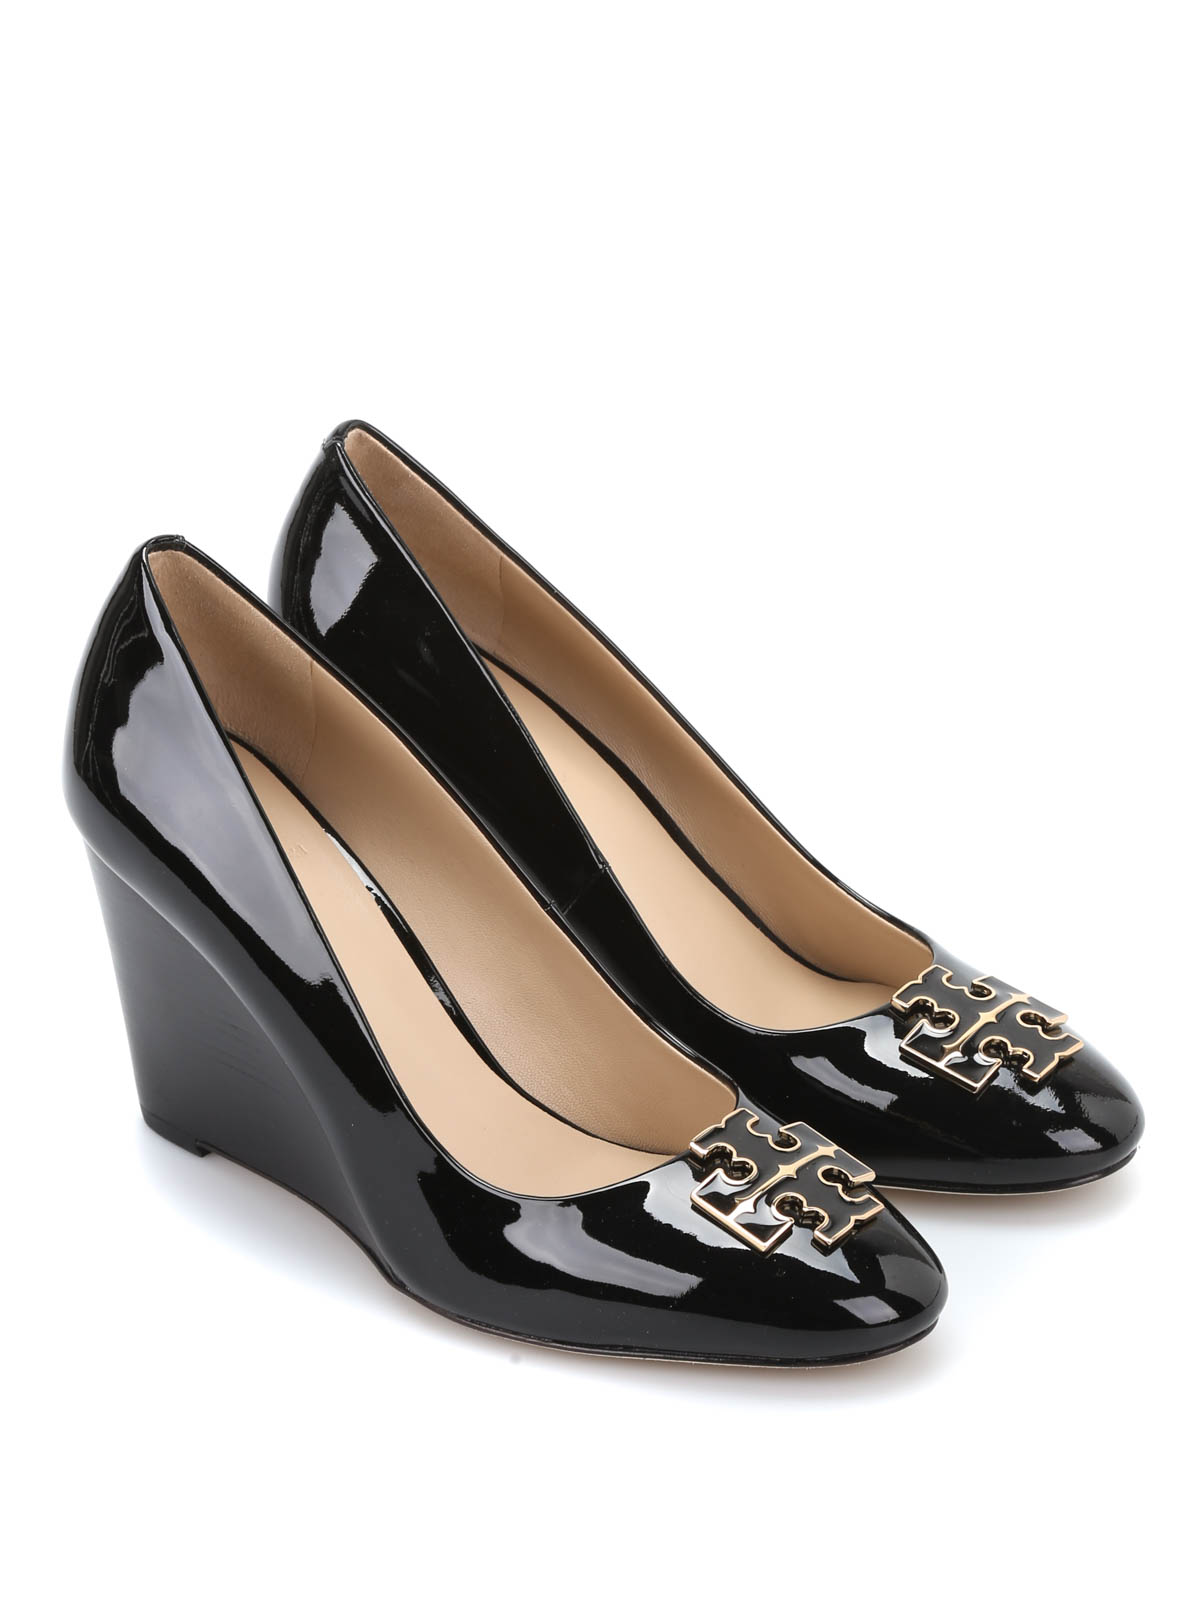 Enter the world of Tory Burch fashion at collegenewhampshire938.ml See our guide to the latest styles in Tory Burch shoes, clothing & accessories. Free shipping & returns.